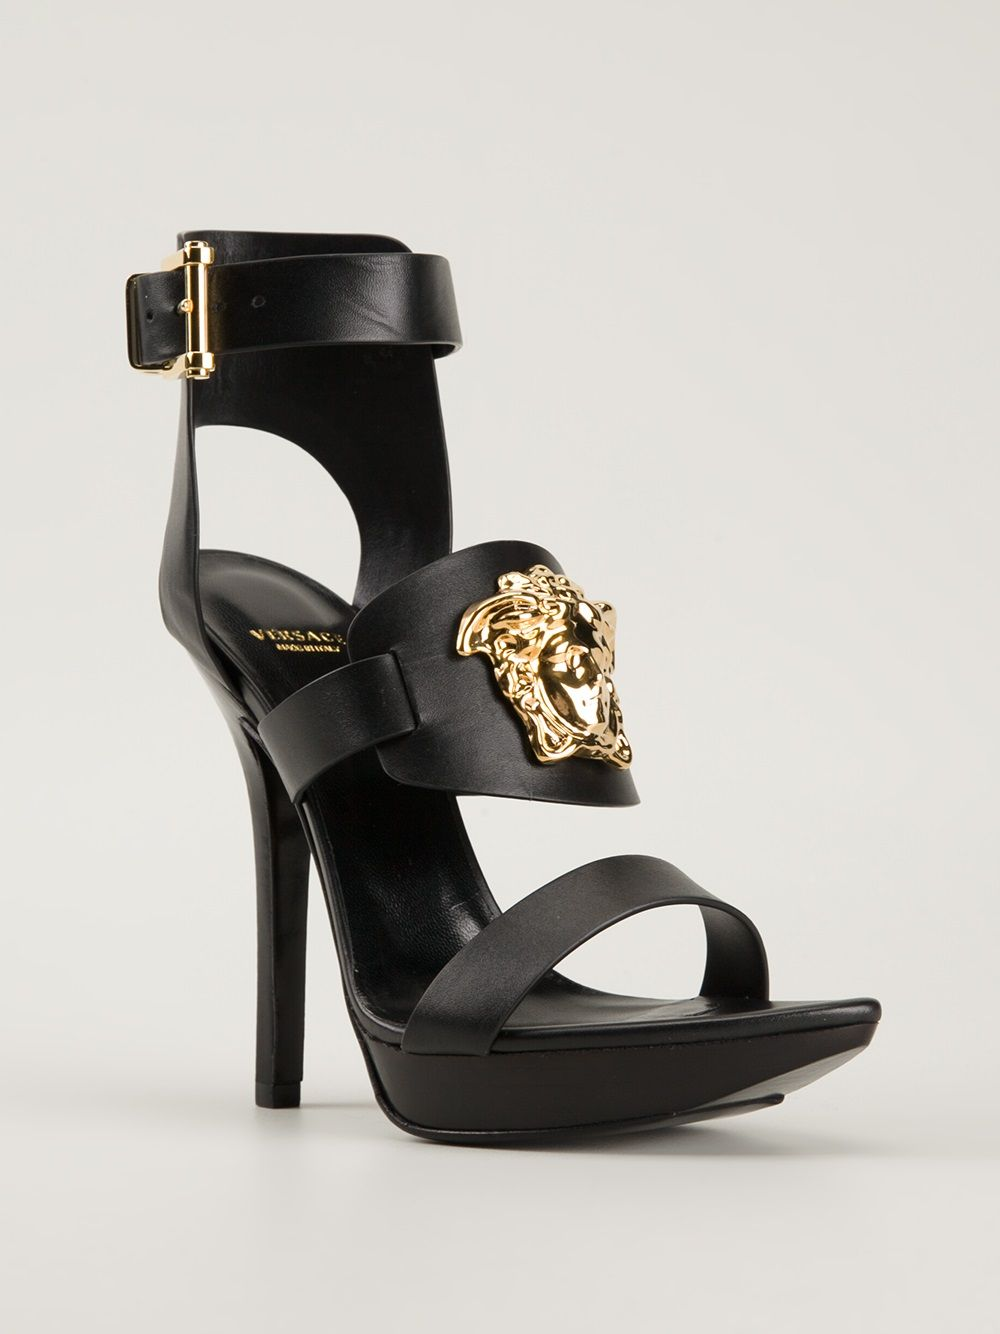 20c0499ca18b Versace Black Medusa Platform Sandals  Shoes  Heels  HighHeels ...